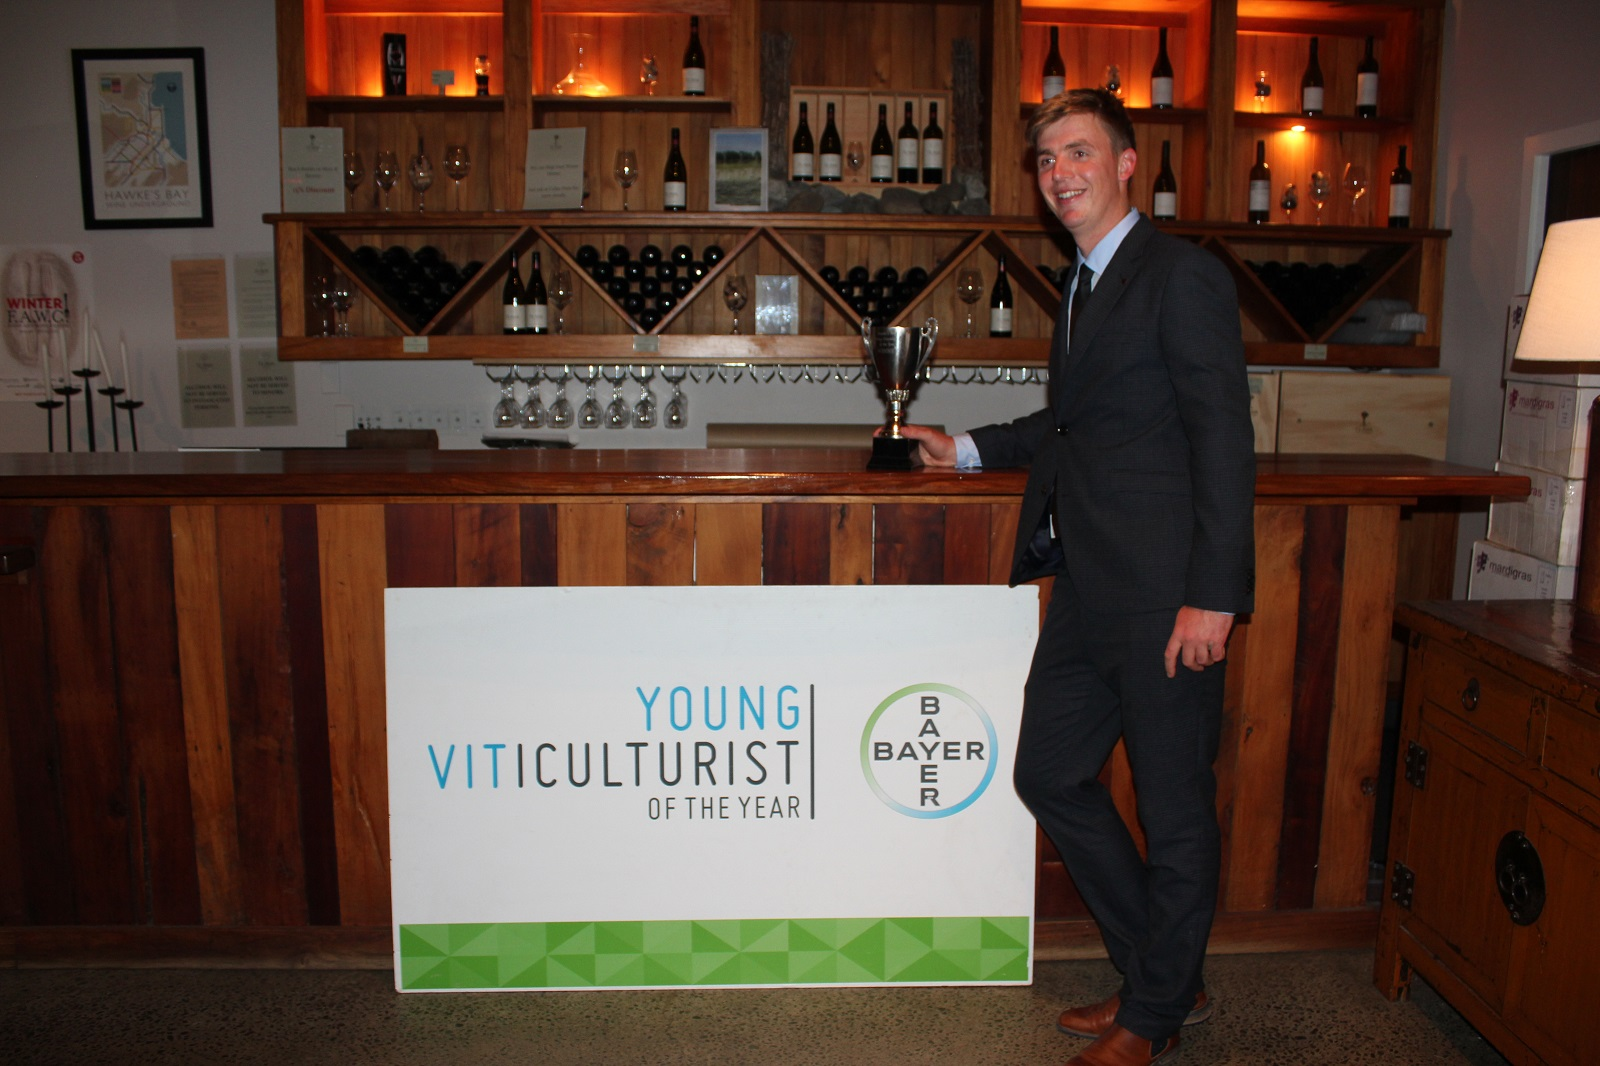 Anton Luiten, Young Viticulturist of the year.